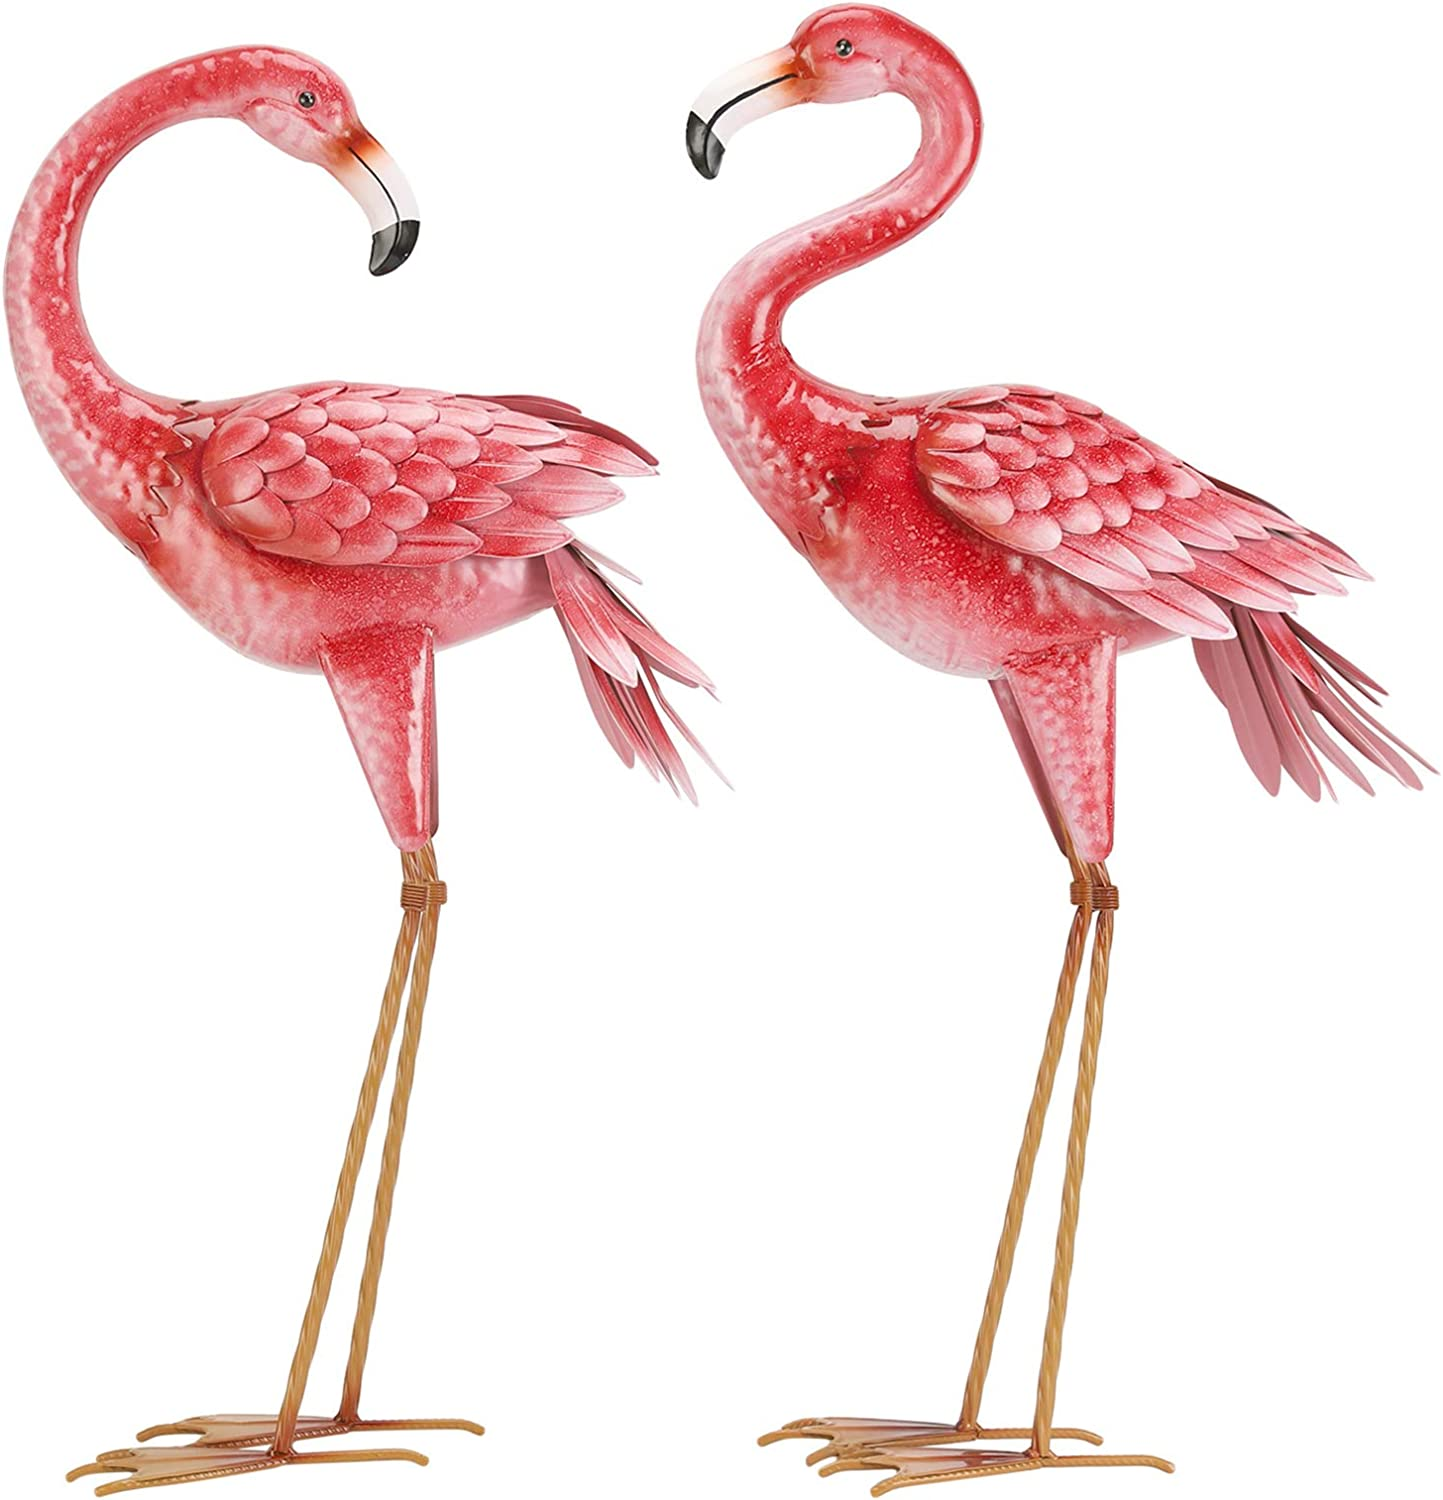 Kircust Flamingo Garden Statues and Sculptures, Metal Birds Yard Art Outdoor Statue, Large Pink Flamigo Lawn Ornaments for Home, Patio, Backyard Decor (2-Pack)